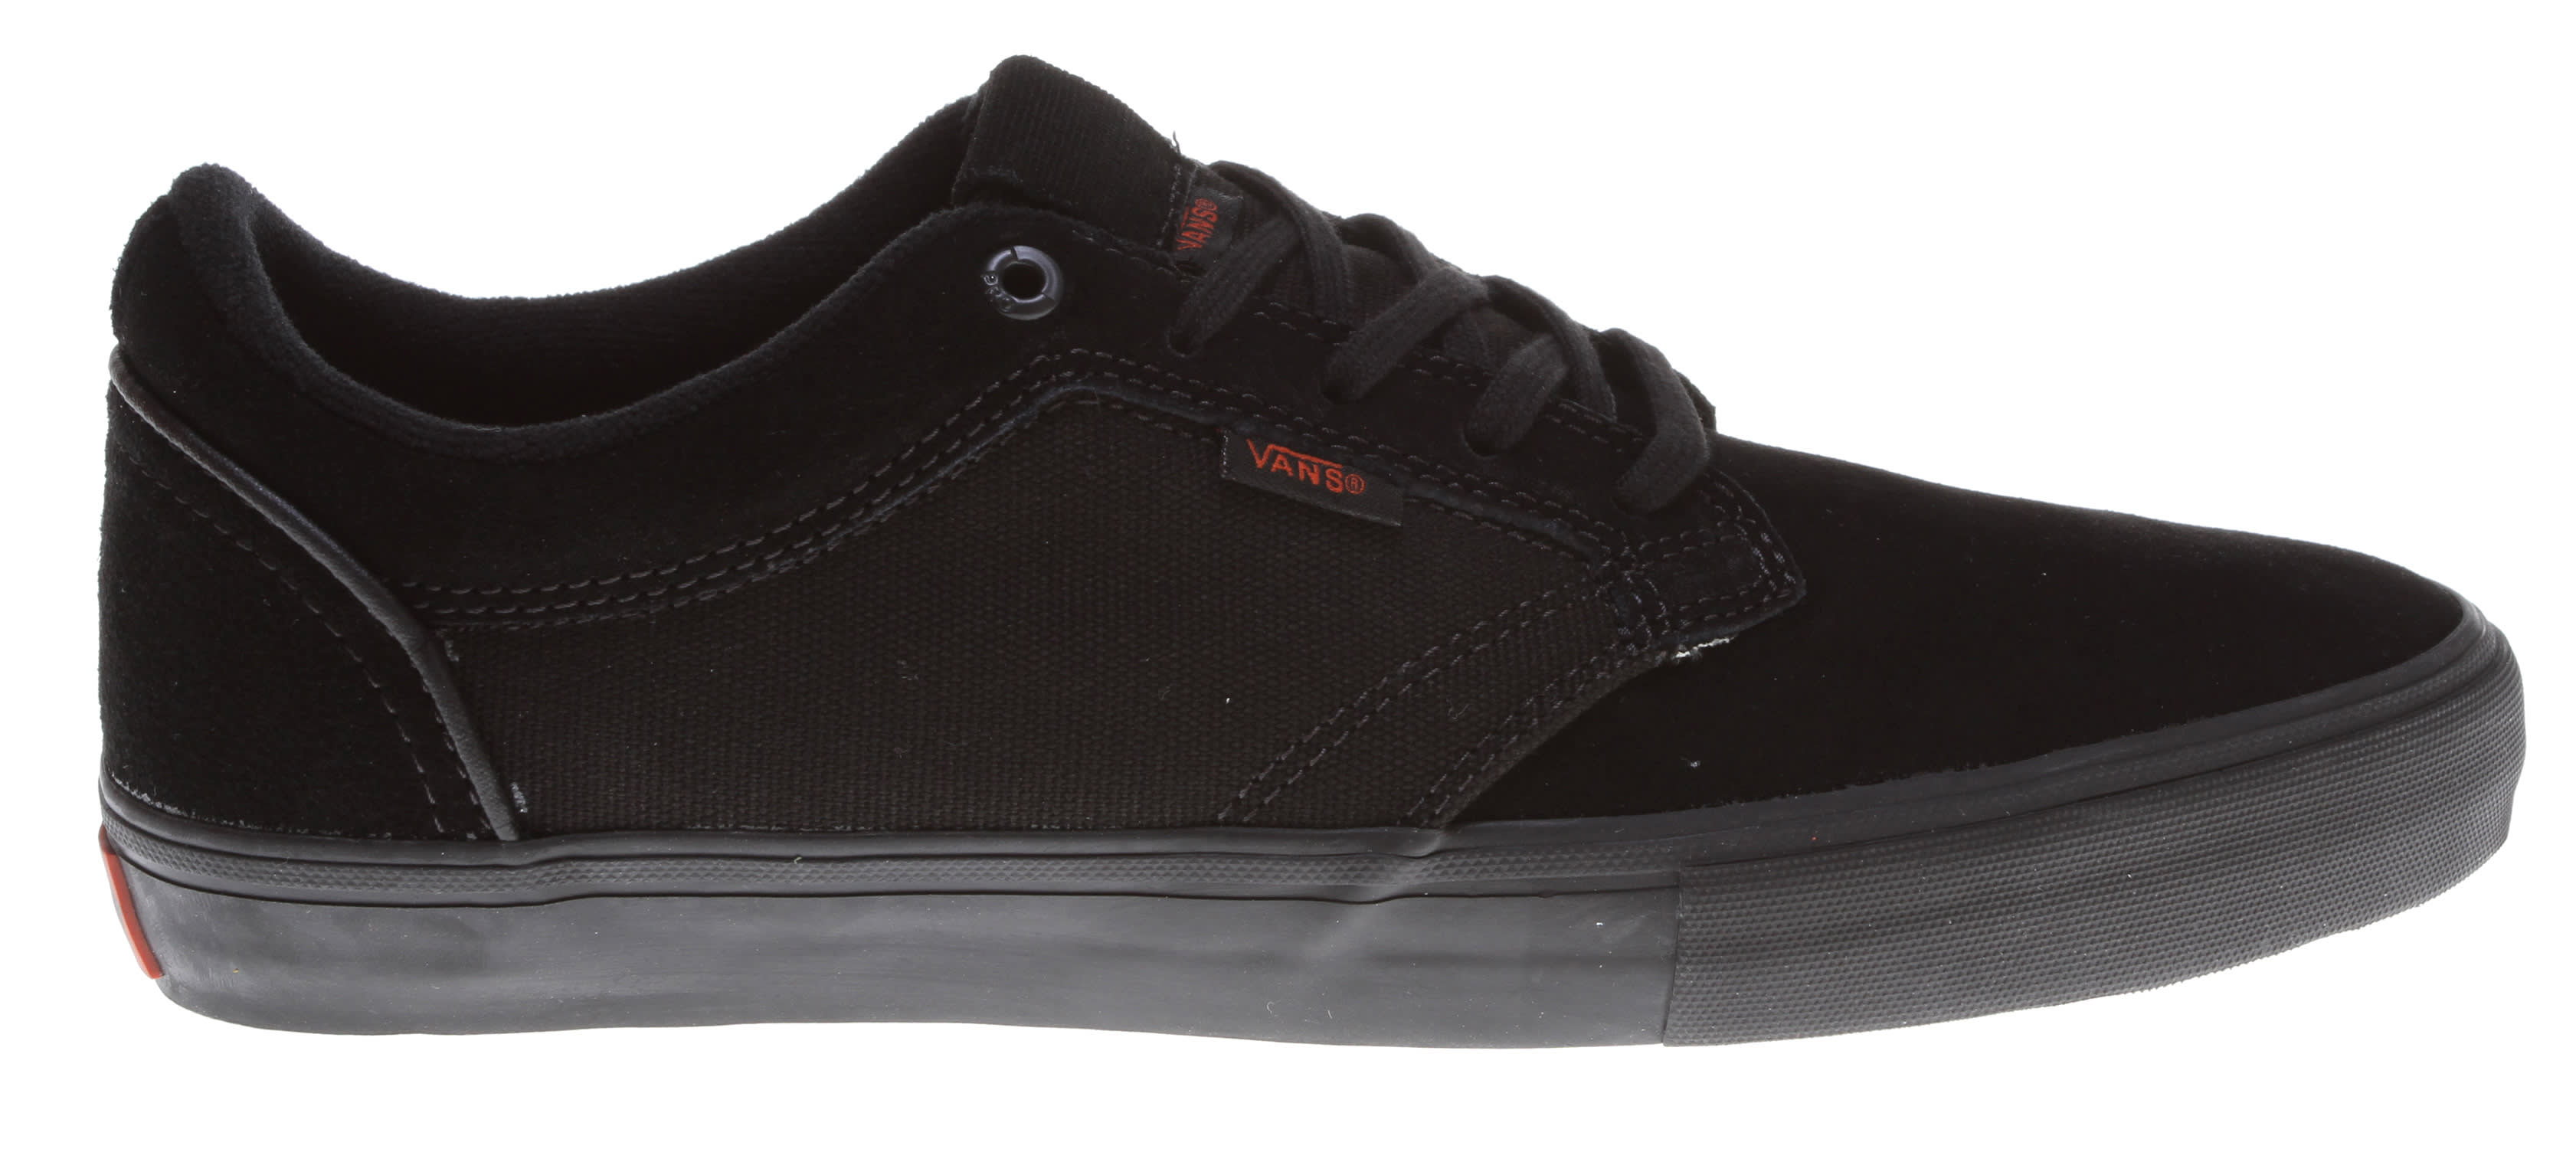 dde29d491020 Vans Type II Skate Shoes - thumbnail 1